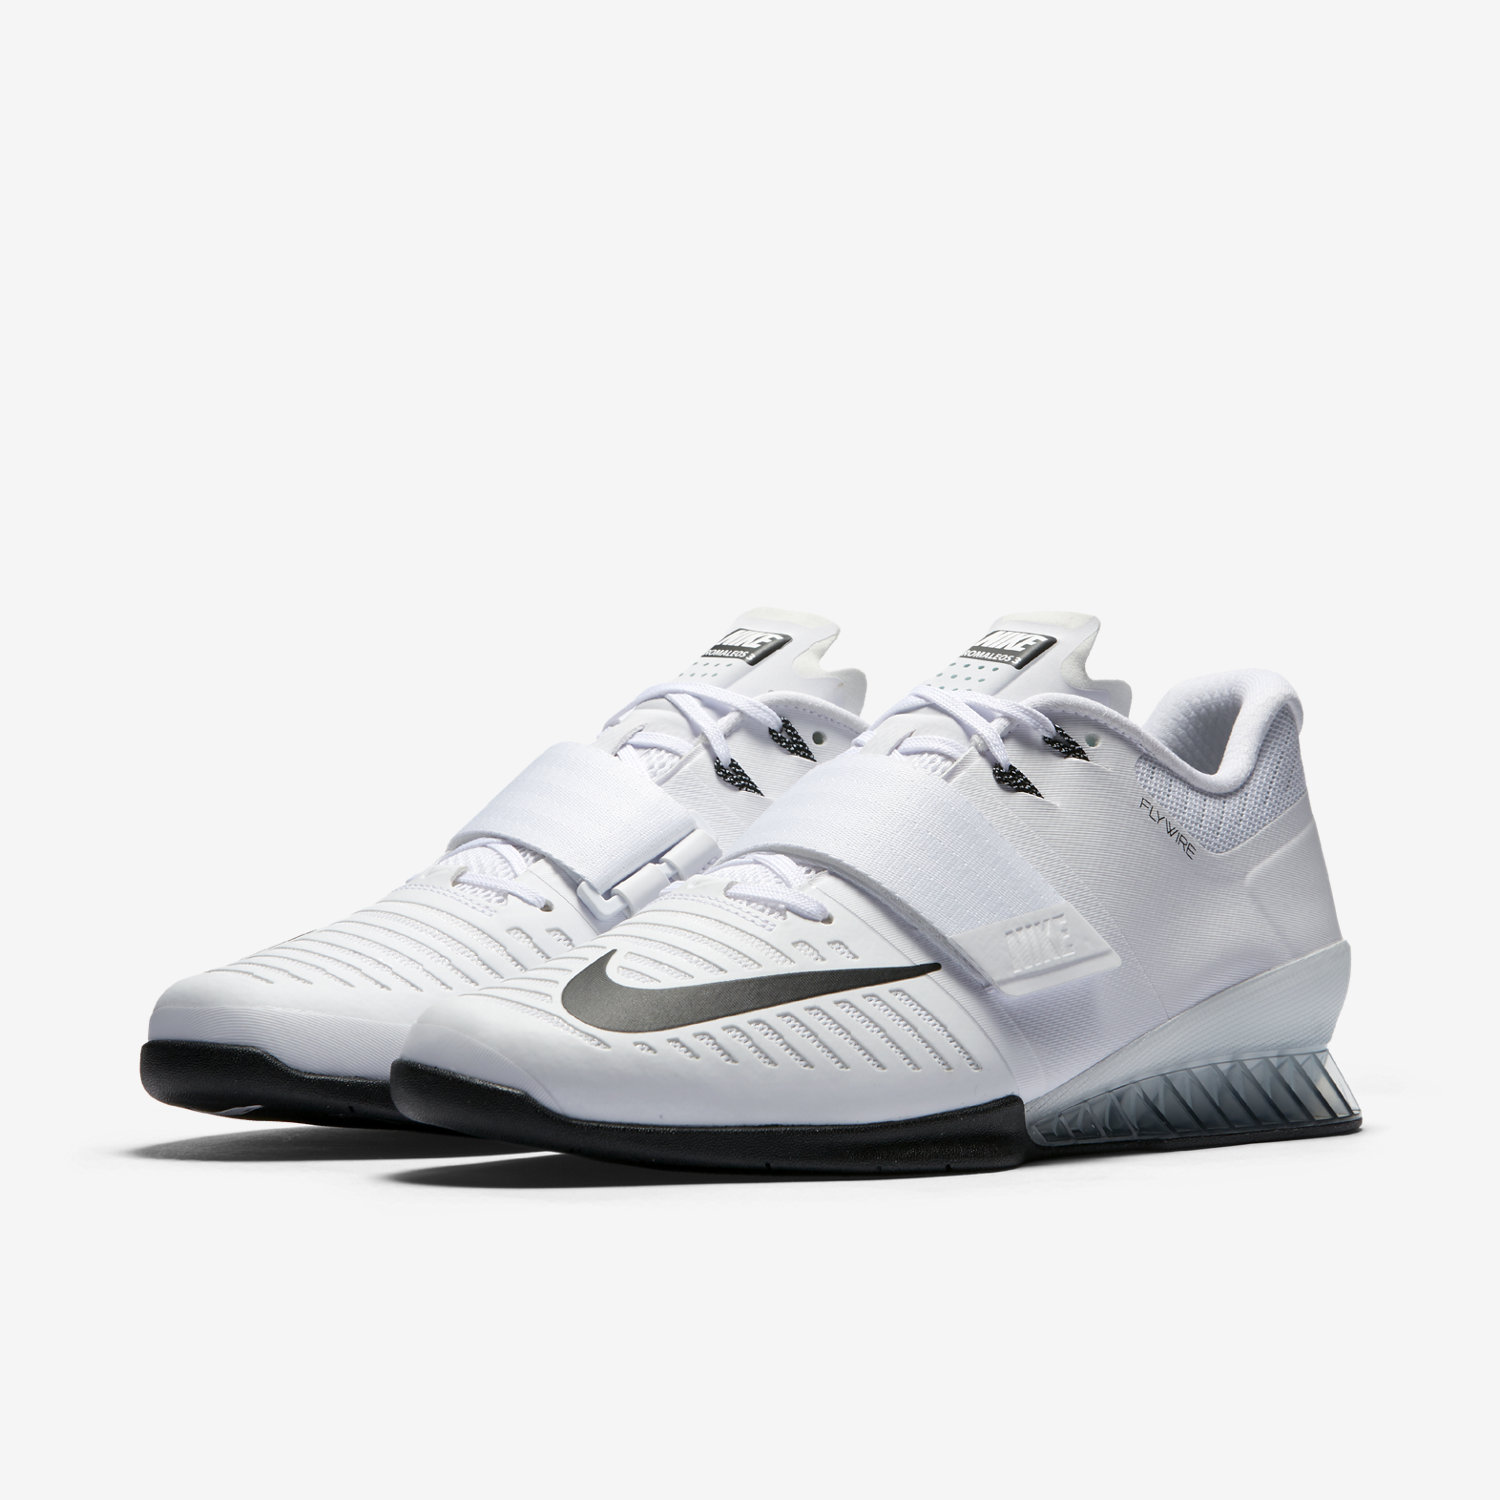 reputable site c9ce9 fb424 ... reduced nike romaleos 3 mens weightlifting shoe. 37941 2ce40